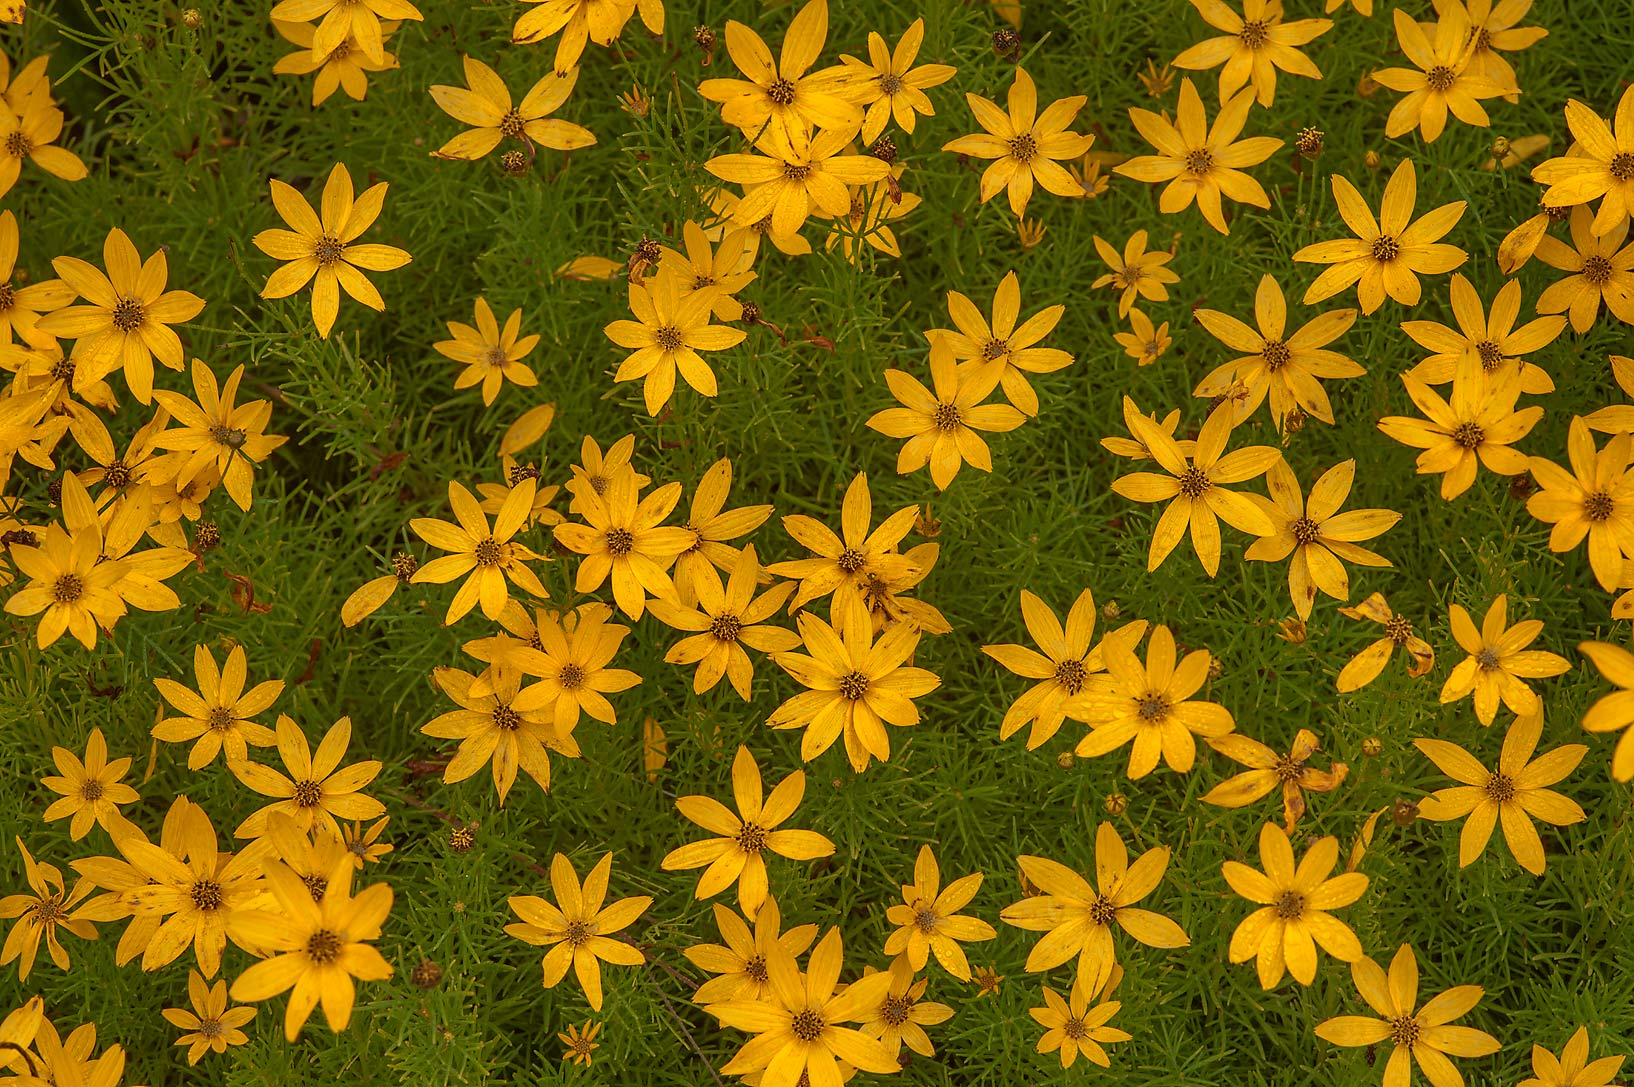 Yellow flowers of threadleaf coreopsis (thread...Institute. St.Petersburg, Russia